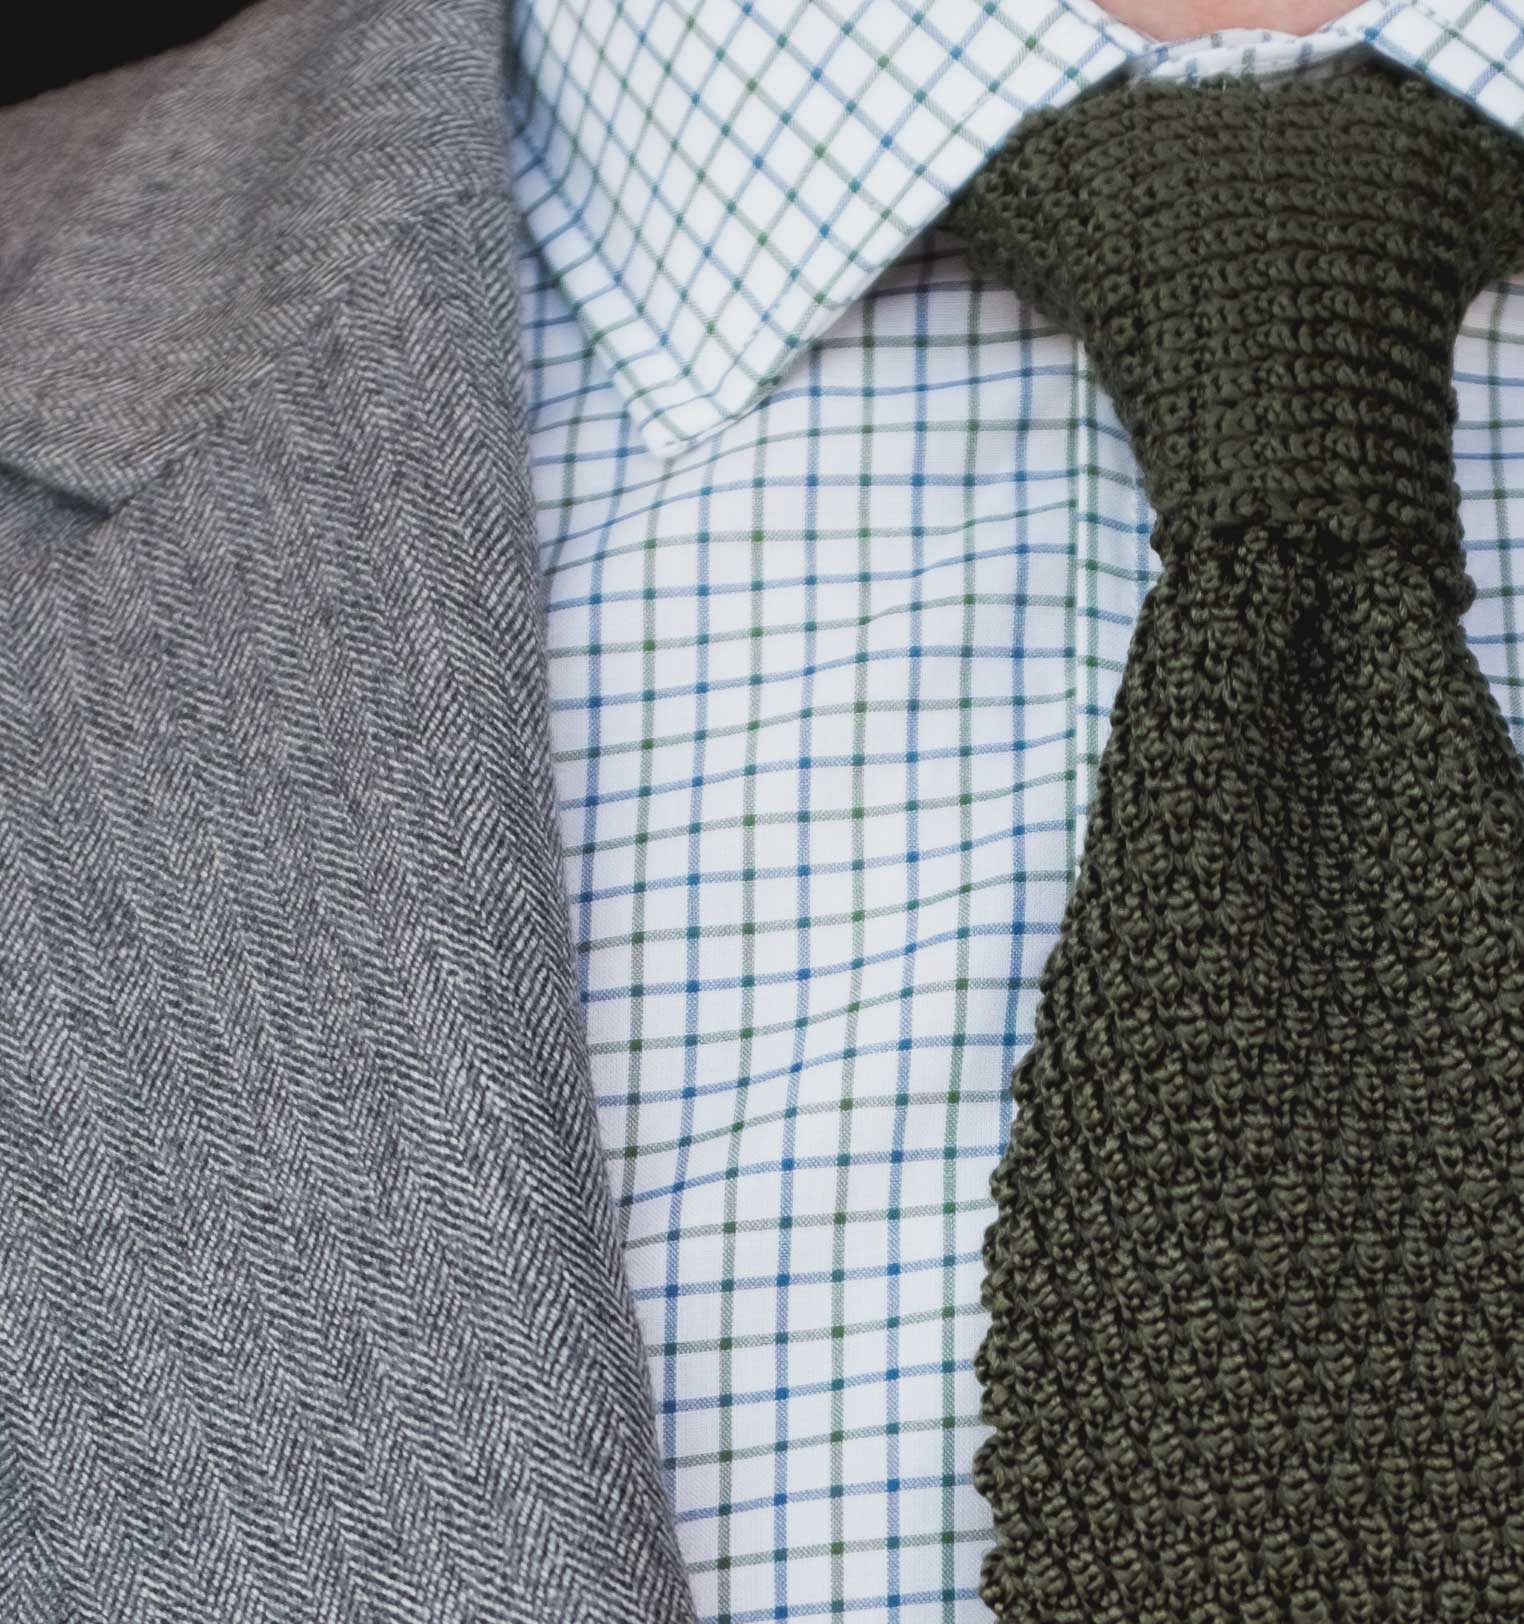 Indochino Herringbone suit with knit tie